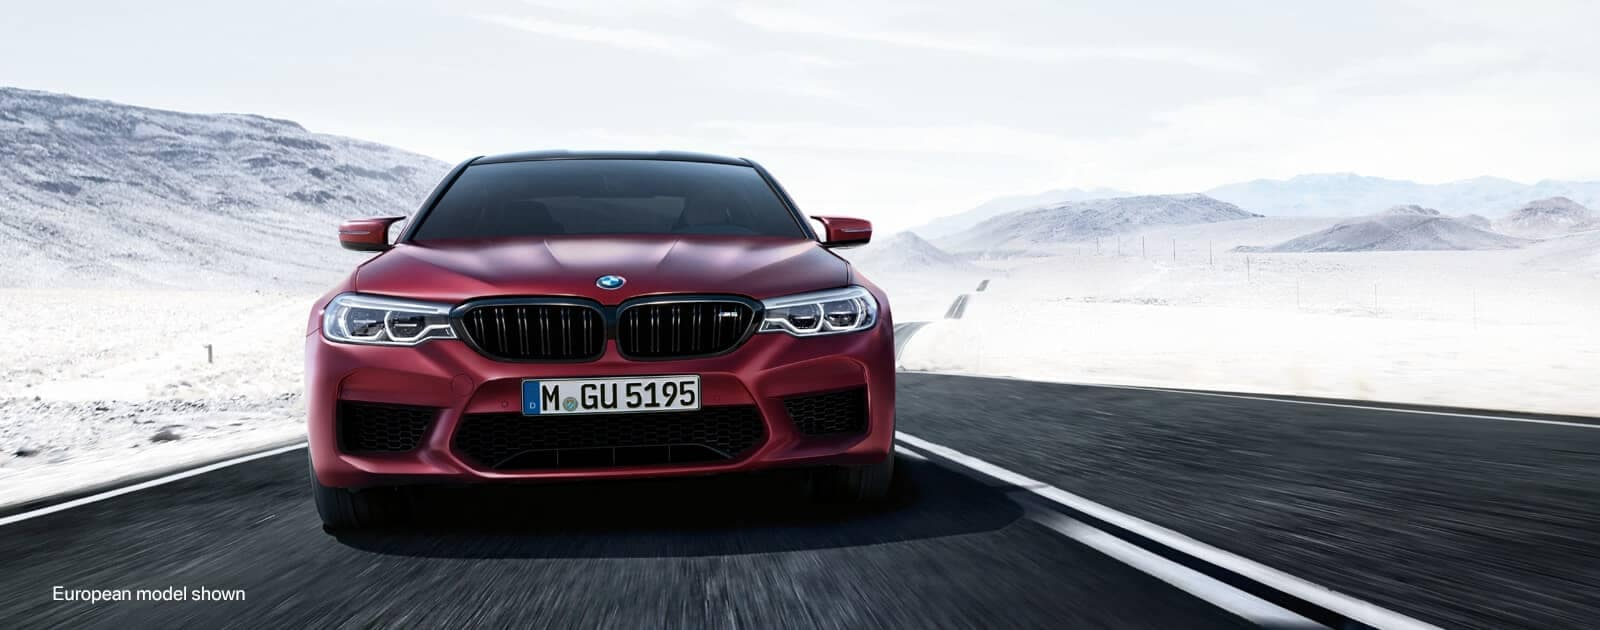 BMW_FirstEdition_M5_Exterior_04